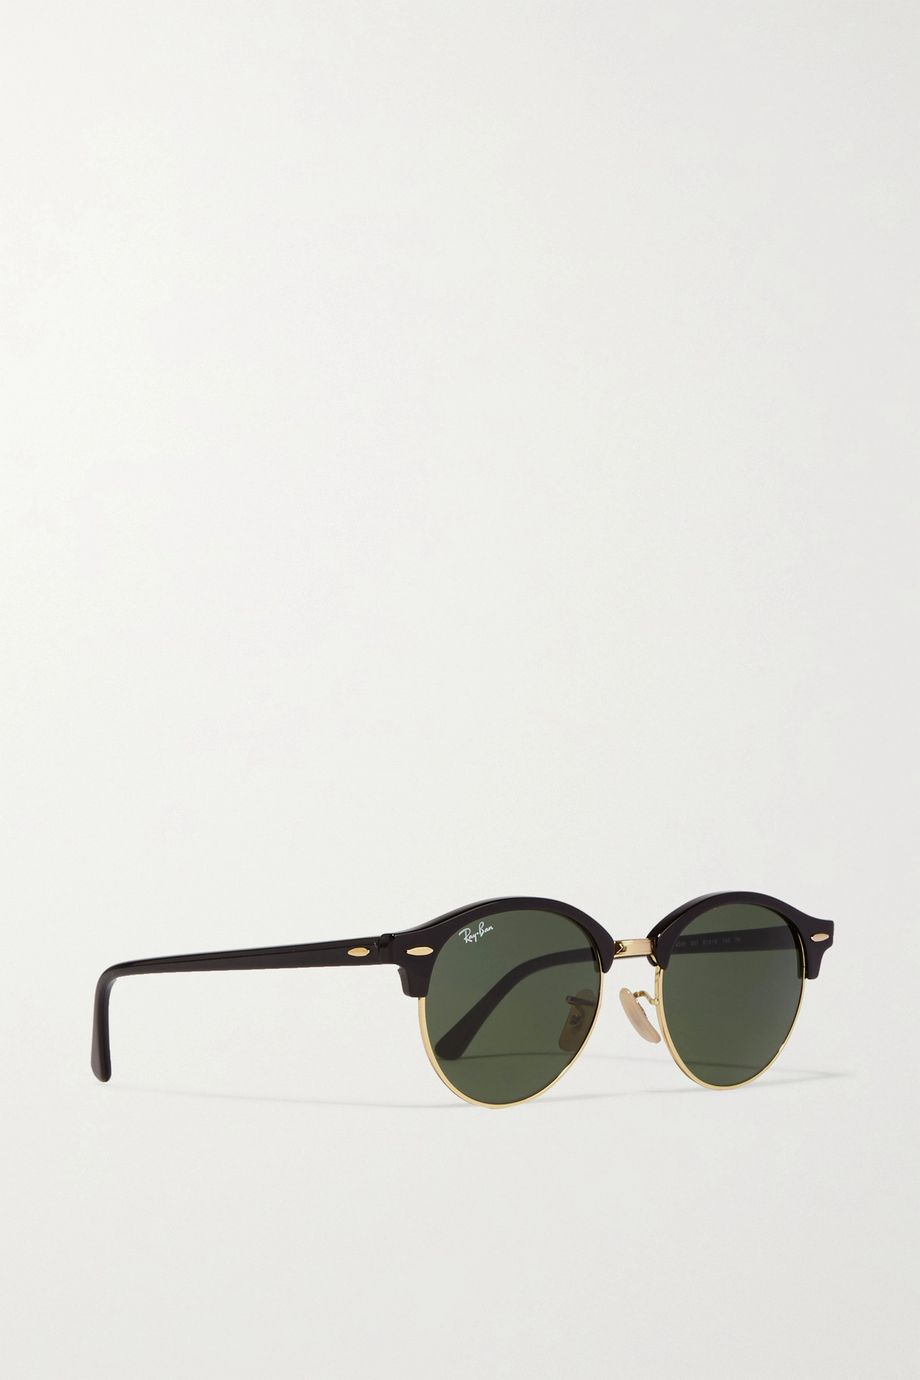 Ray-Ban Clubround acetate and gold-tone sunglasses